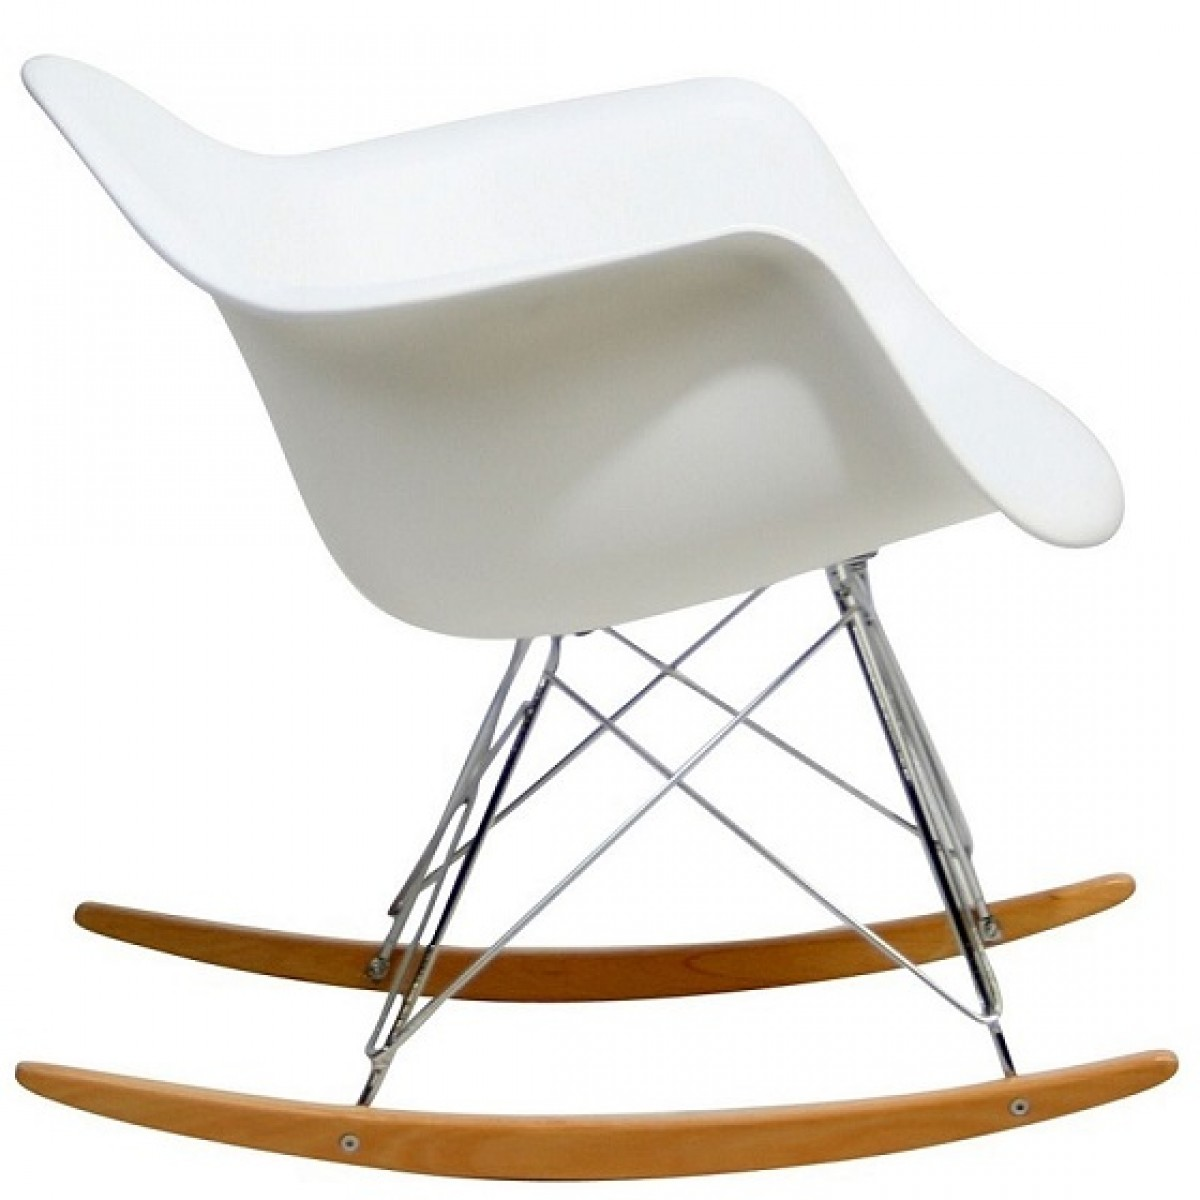 plastic chairs with steel legs rocking chair woodworking plan eames style rar molded white